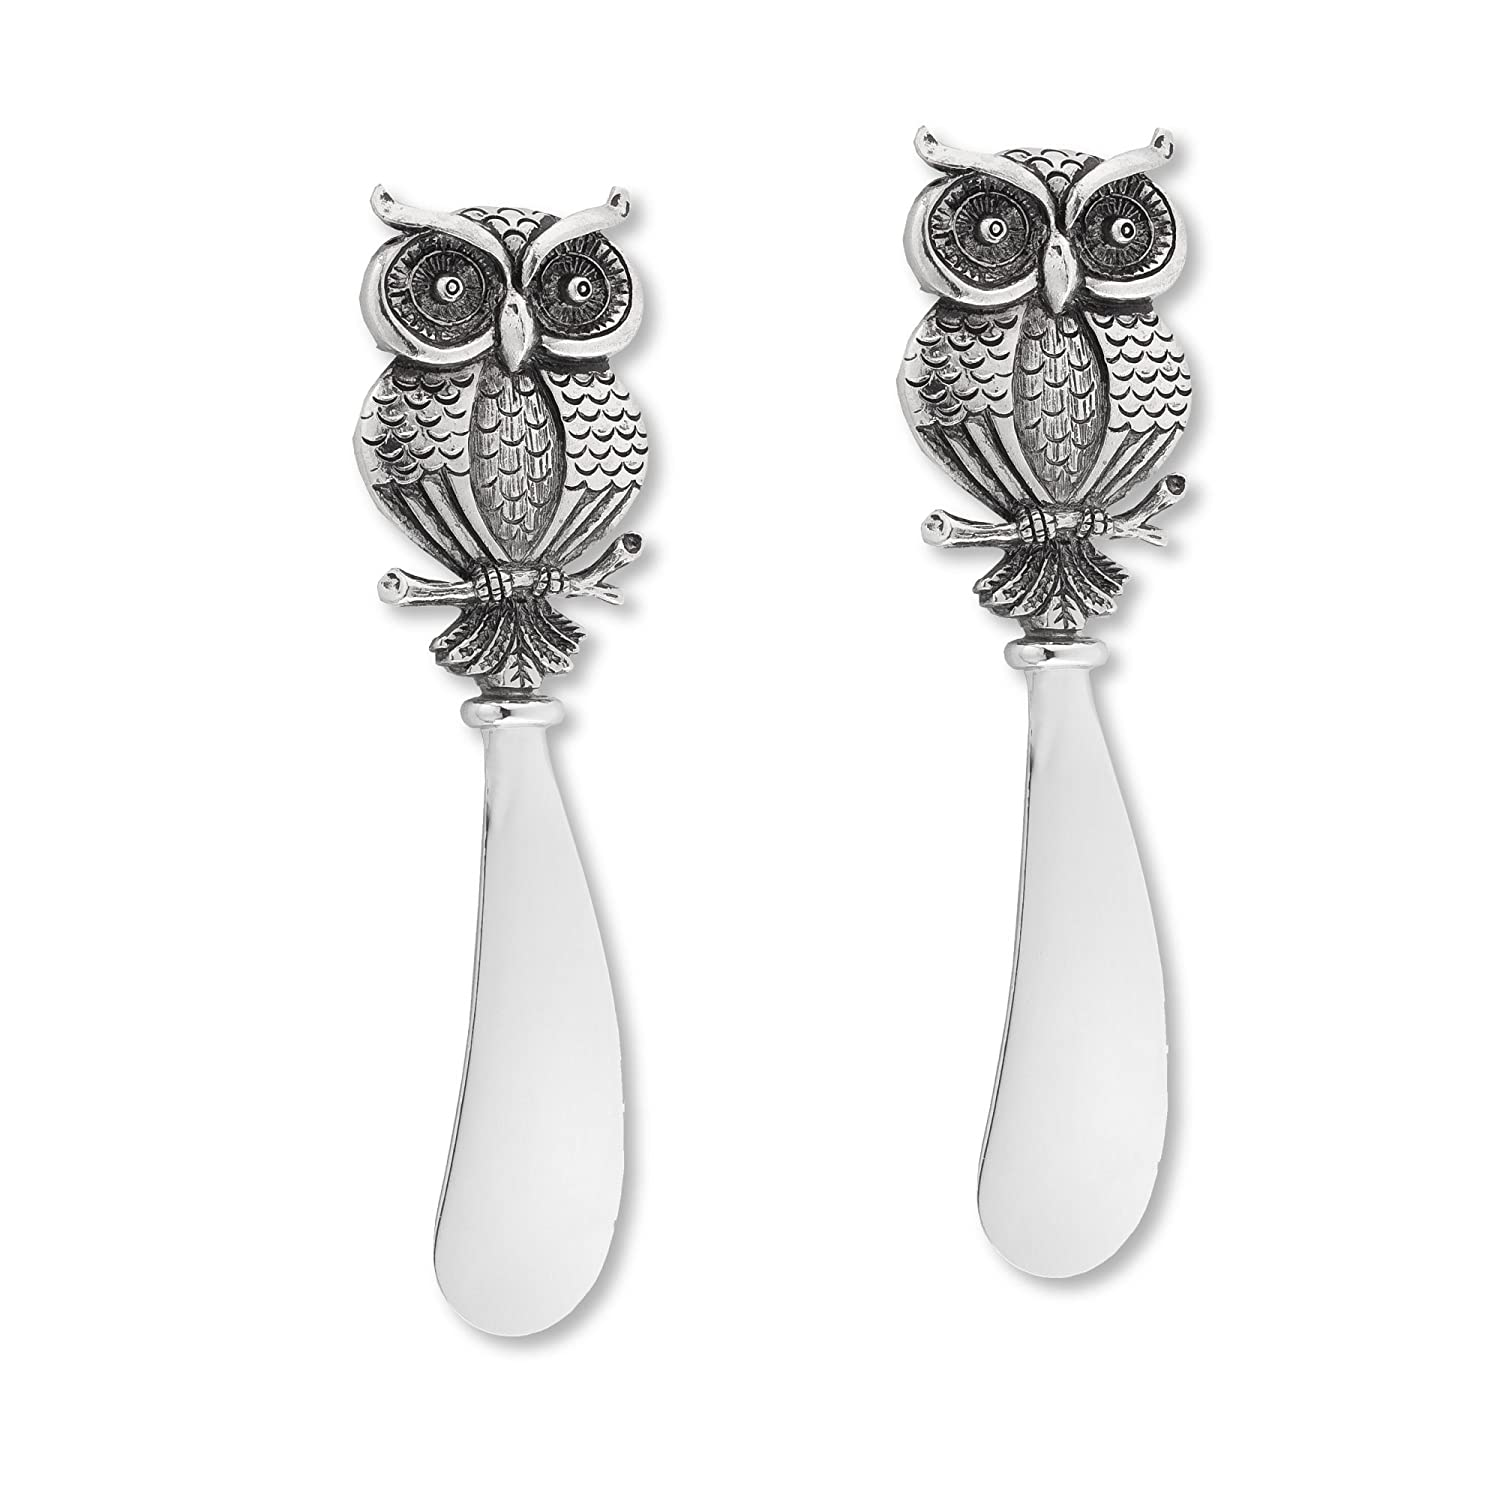 Owl Cheese Spreader Set of 2 by Supreme Housewares 00787